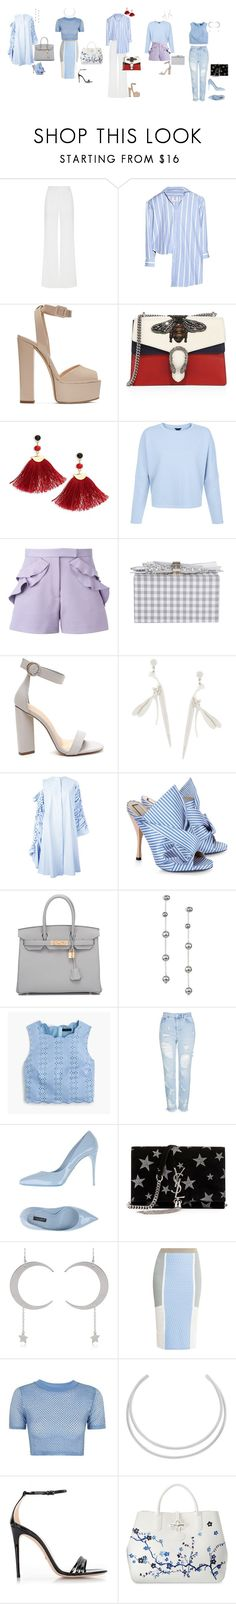 """""""female vs black"""" by yusufbudiman on Polyvore featuring Alexis Mabille, Vetements, Giuseppe Zanotti, Gucci, Shashi, Elie Saab, Edie Parker, Alex Monroe, Reemami and N°21"""